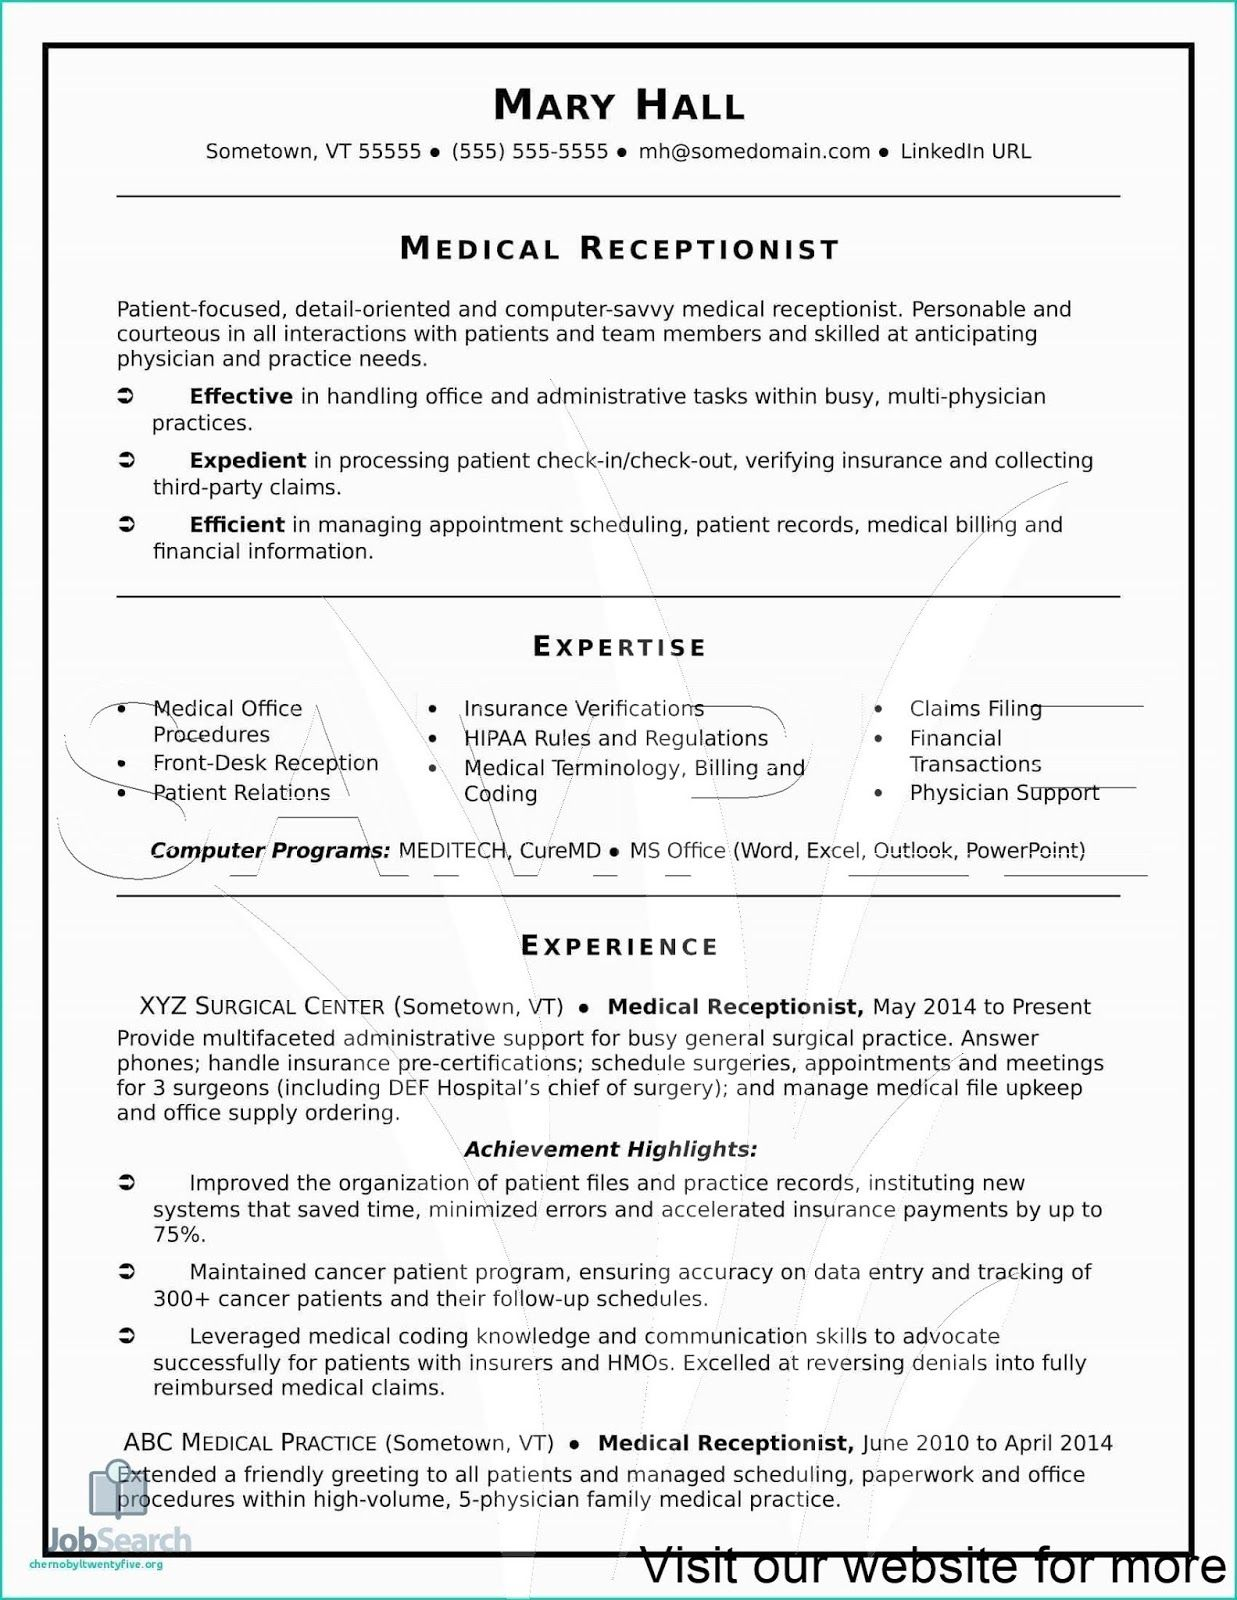 Resume for Medical Coder Fresher in 2020 Medical resume